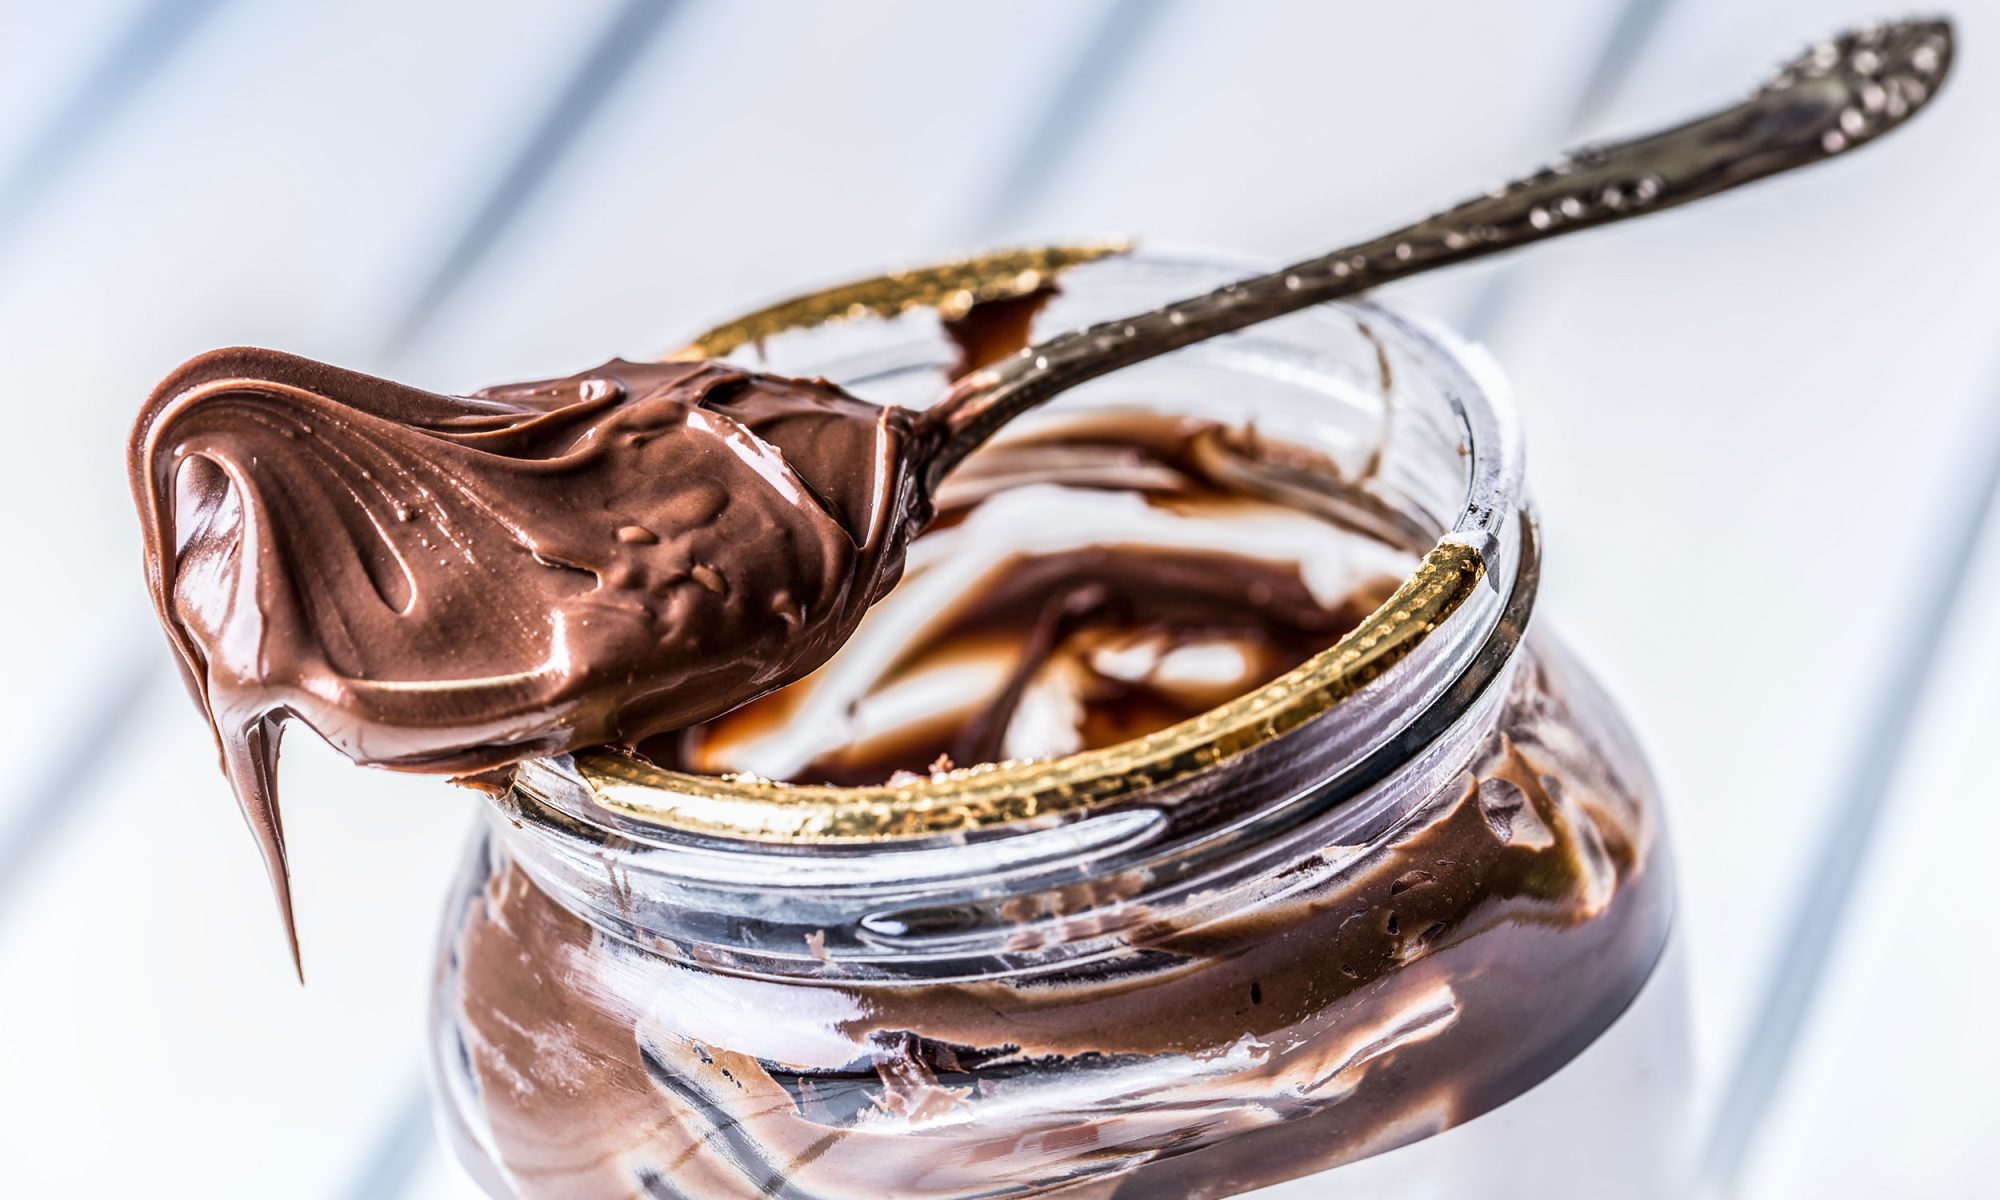 EC: A Nutella Cafe Is Coming to Chicago